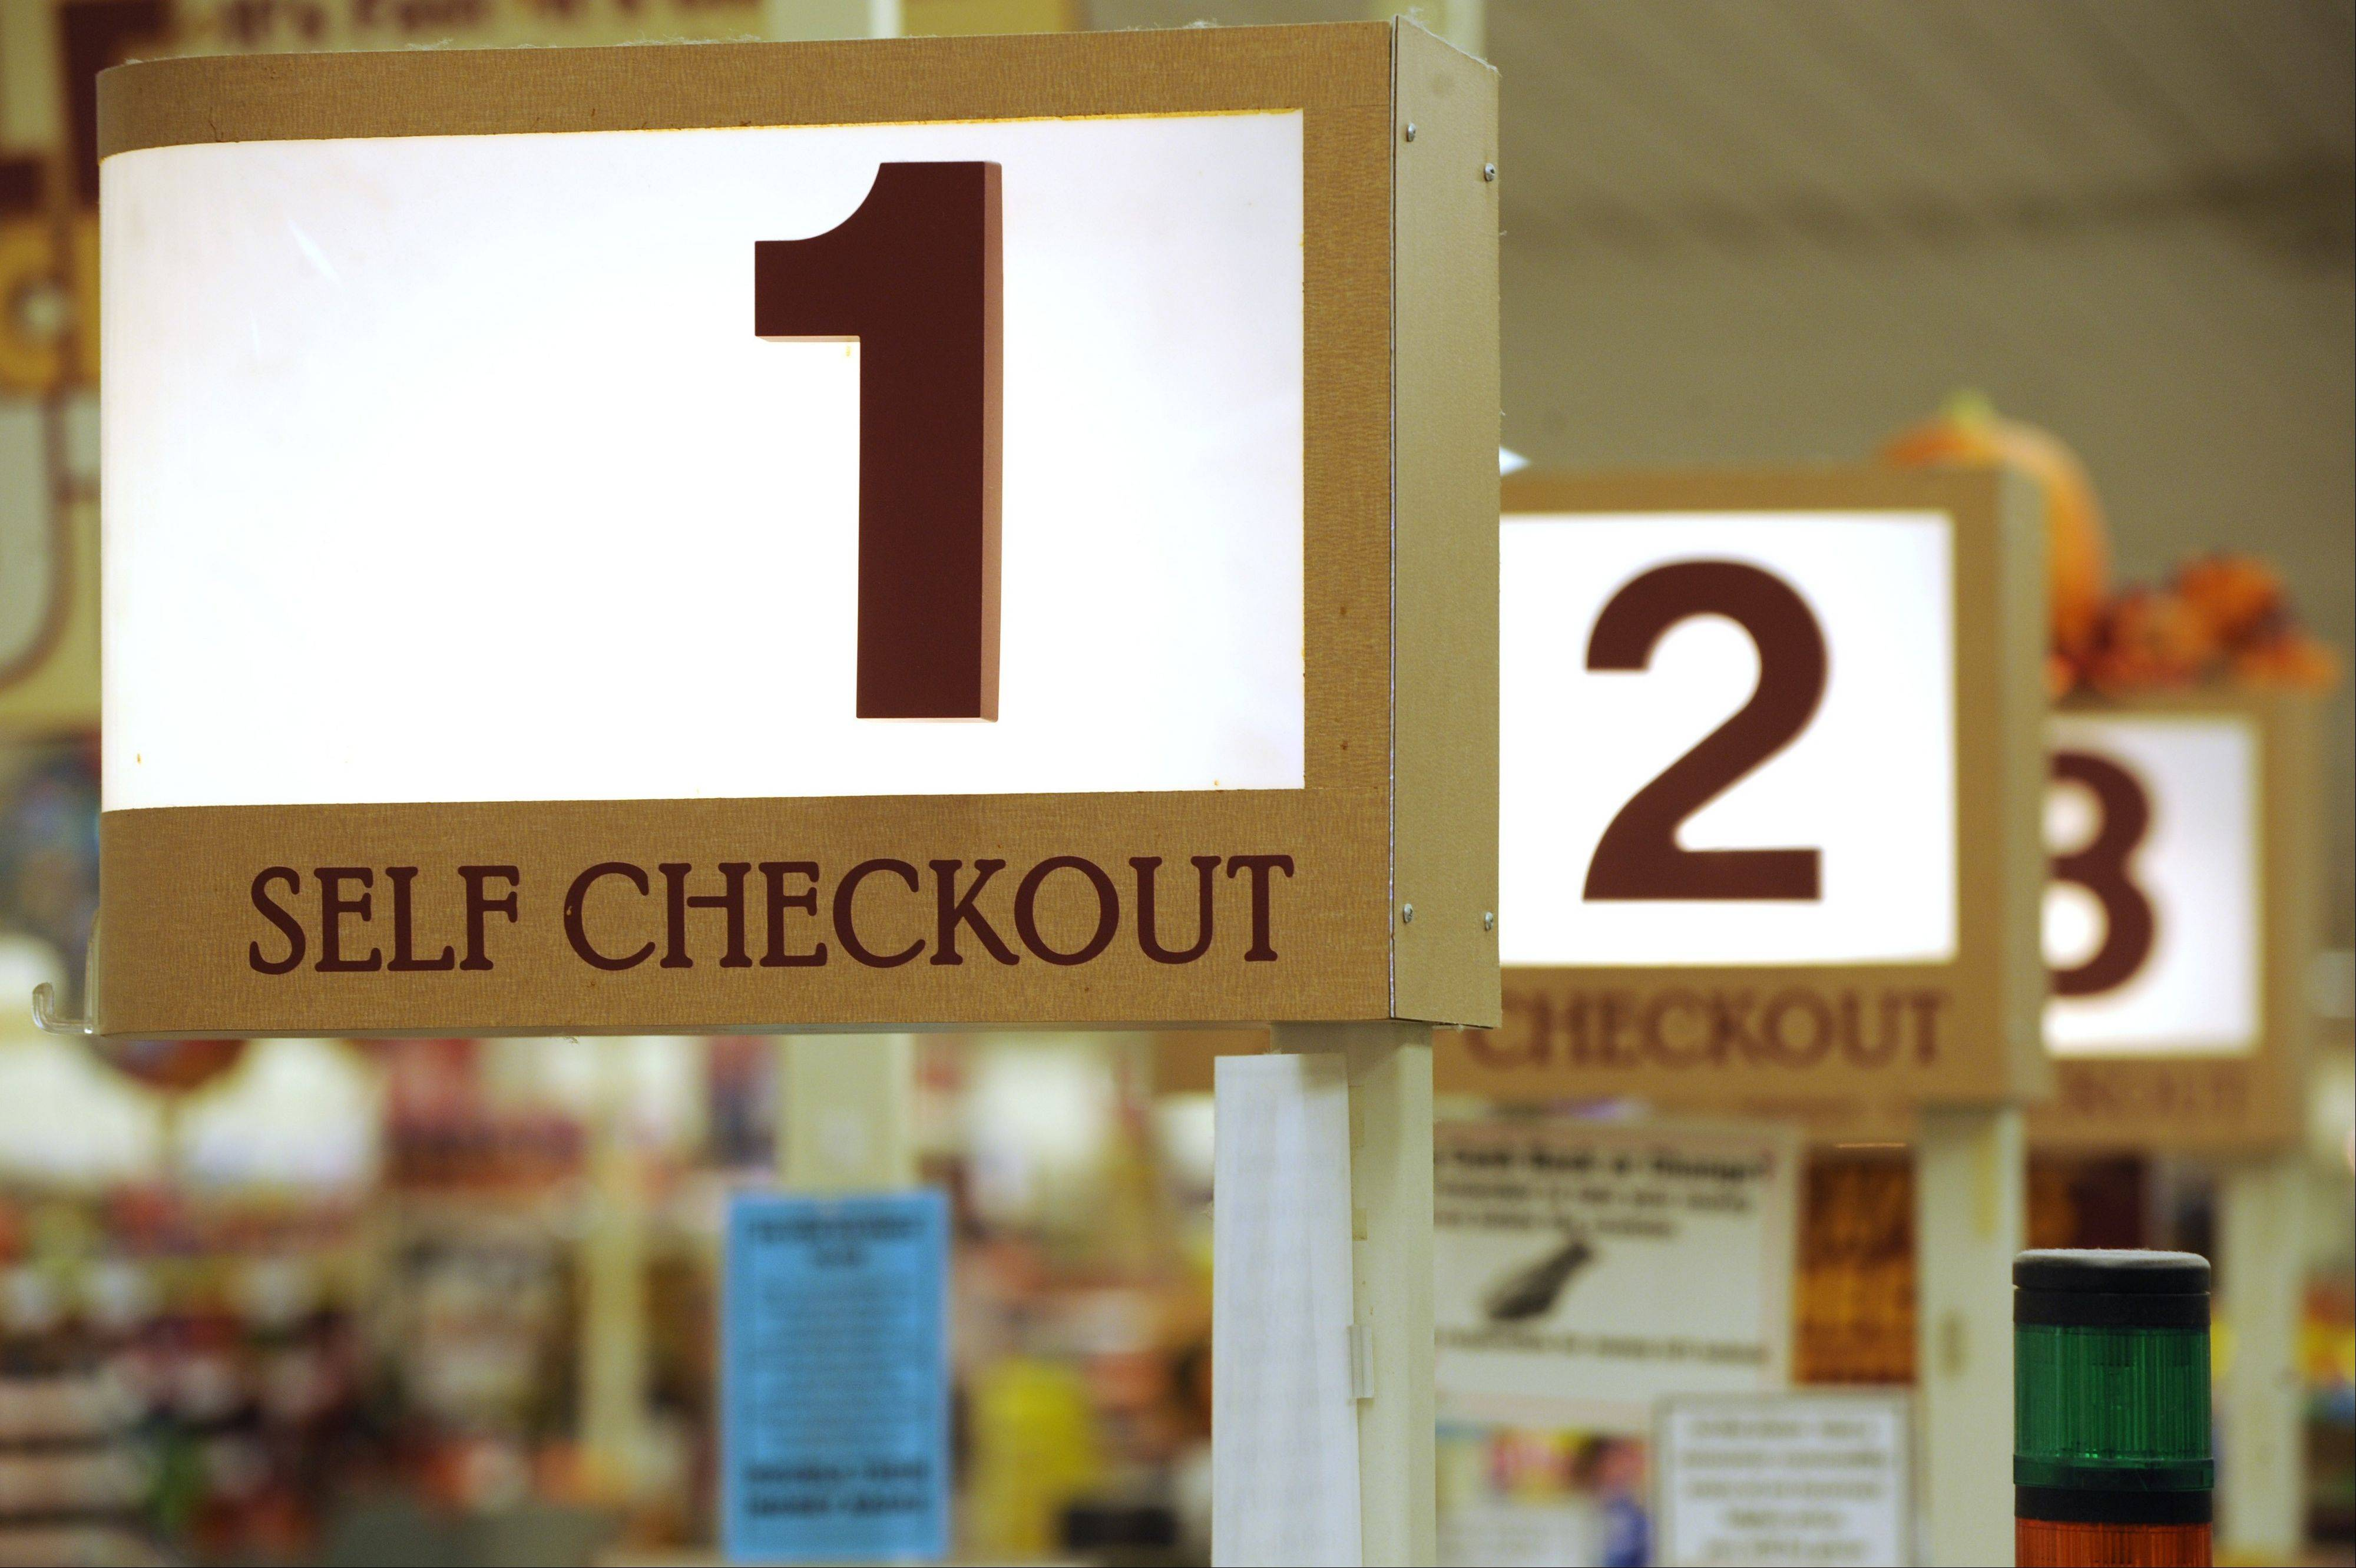 Self checkout lanes, like these at a Connecticut supermarket, are losing favor at some grocery chains, including Jewel-Osco, which intends to emphasize personal service instead.